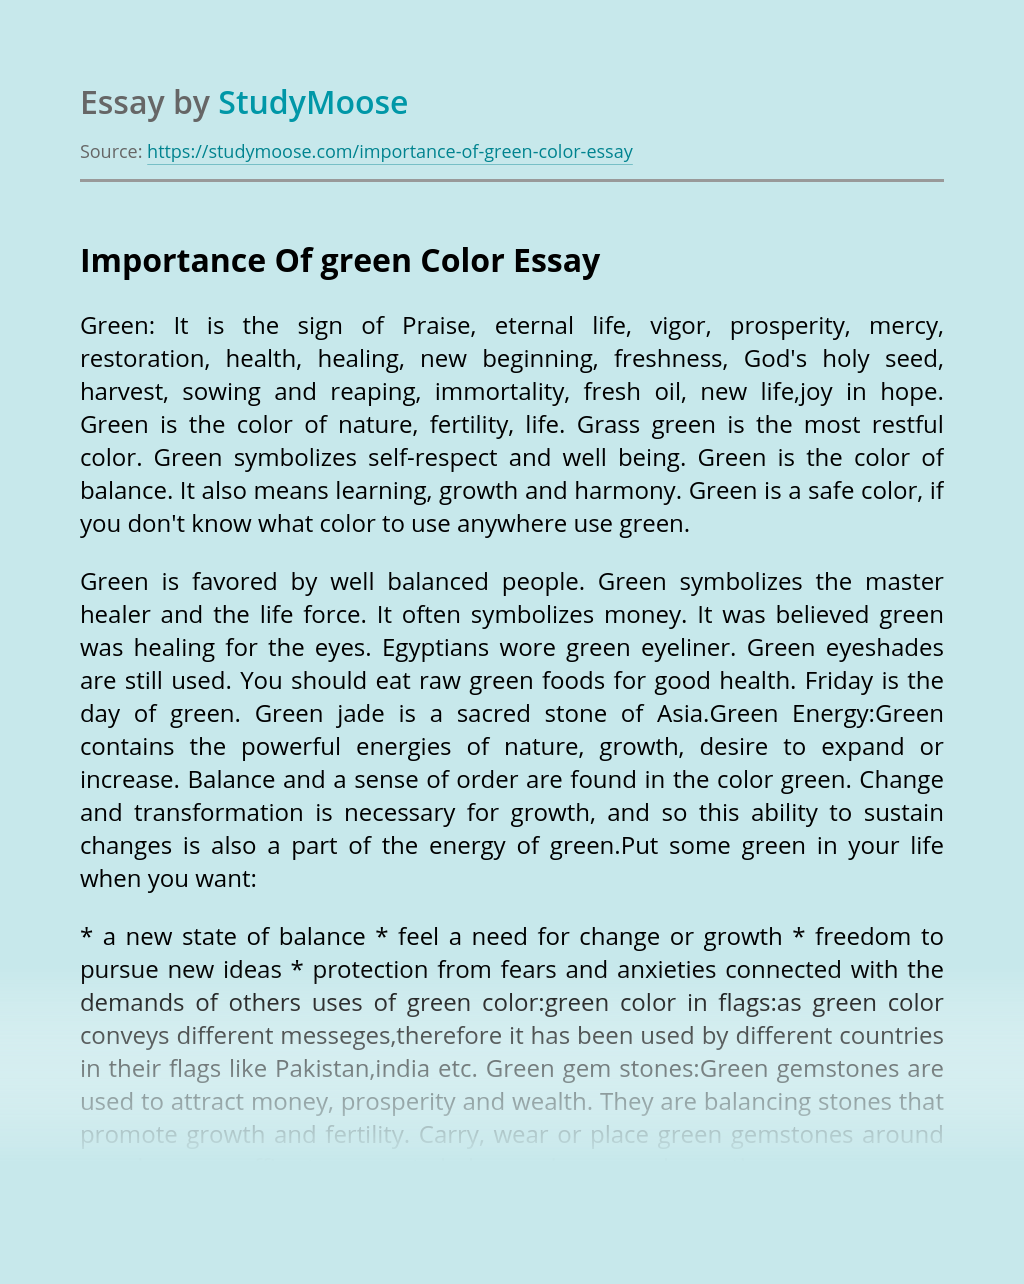 Importance Of green Color